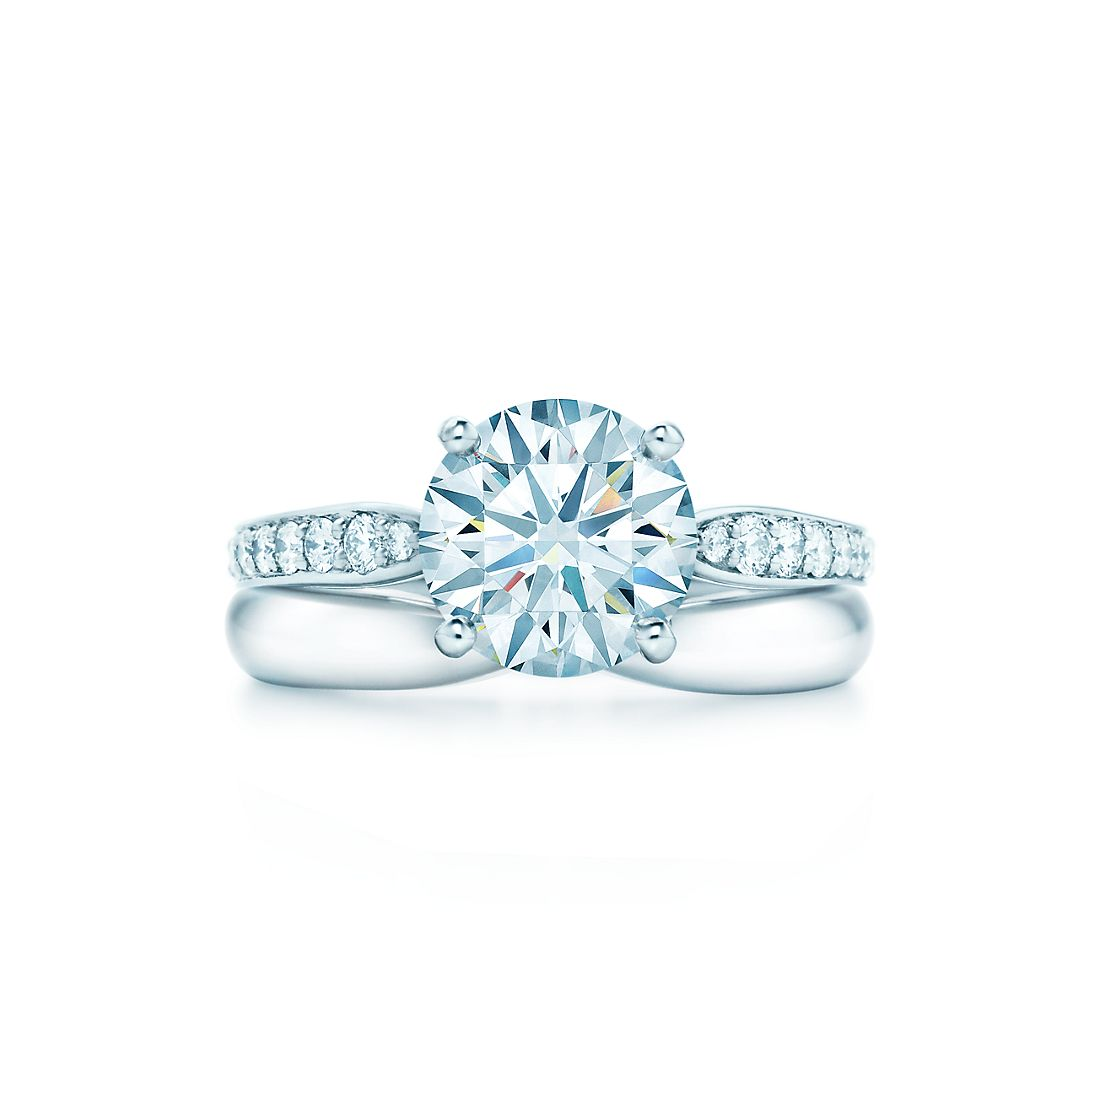 199 Carats Shown With Tiffany HarmonyR Wedding Band